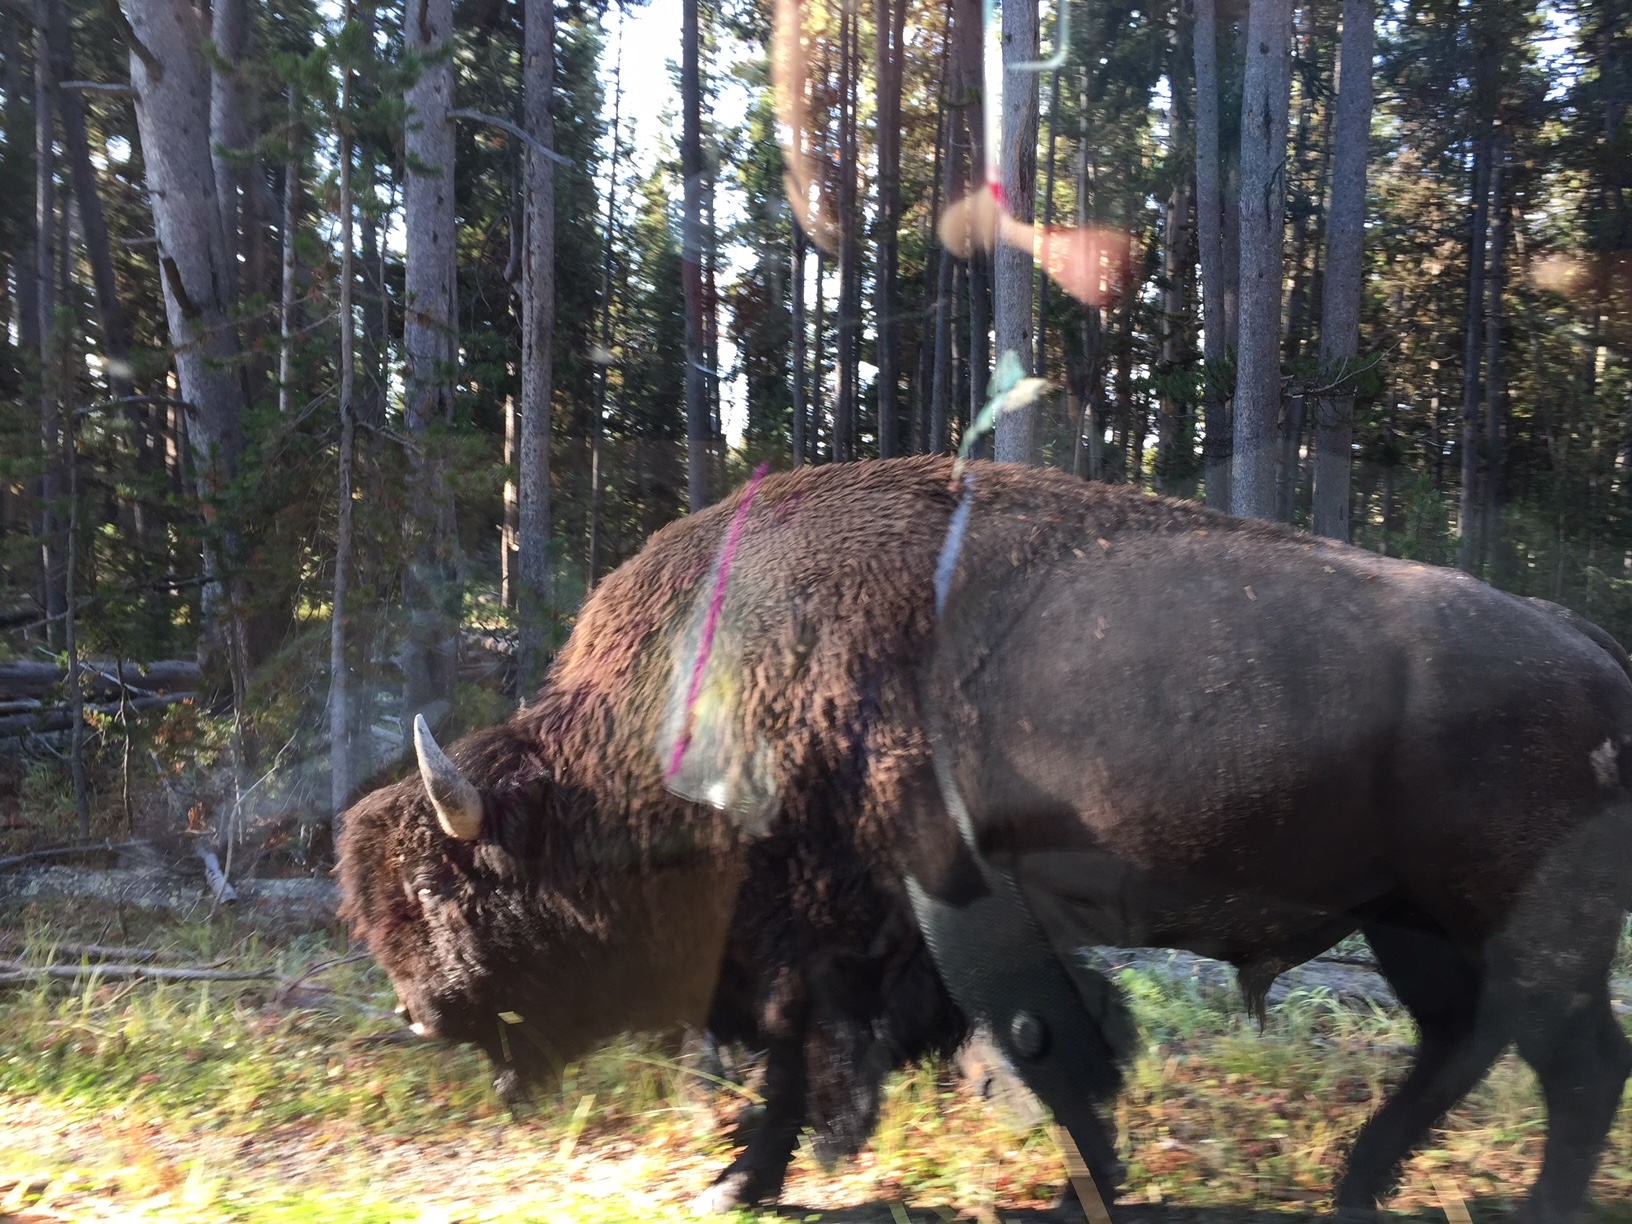 A Yellowstone trip is not complete without a buffalo picture. This bison had traffic stopped and it did not seem to bother him one bit as he sauntered along the side of the road past our car.